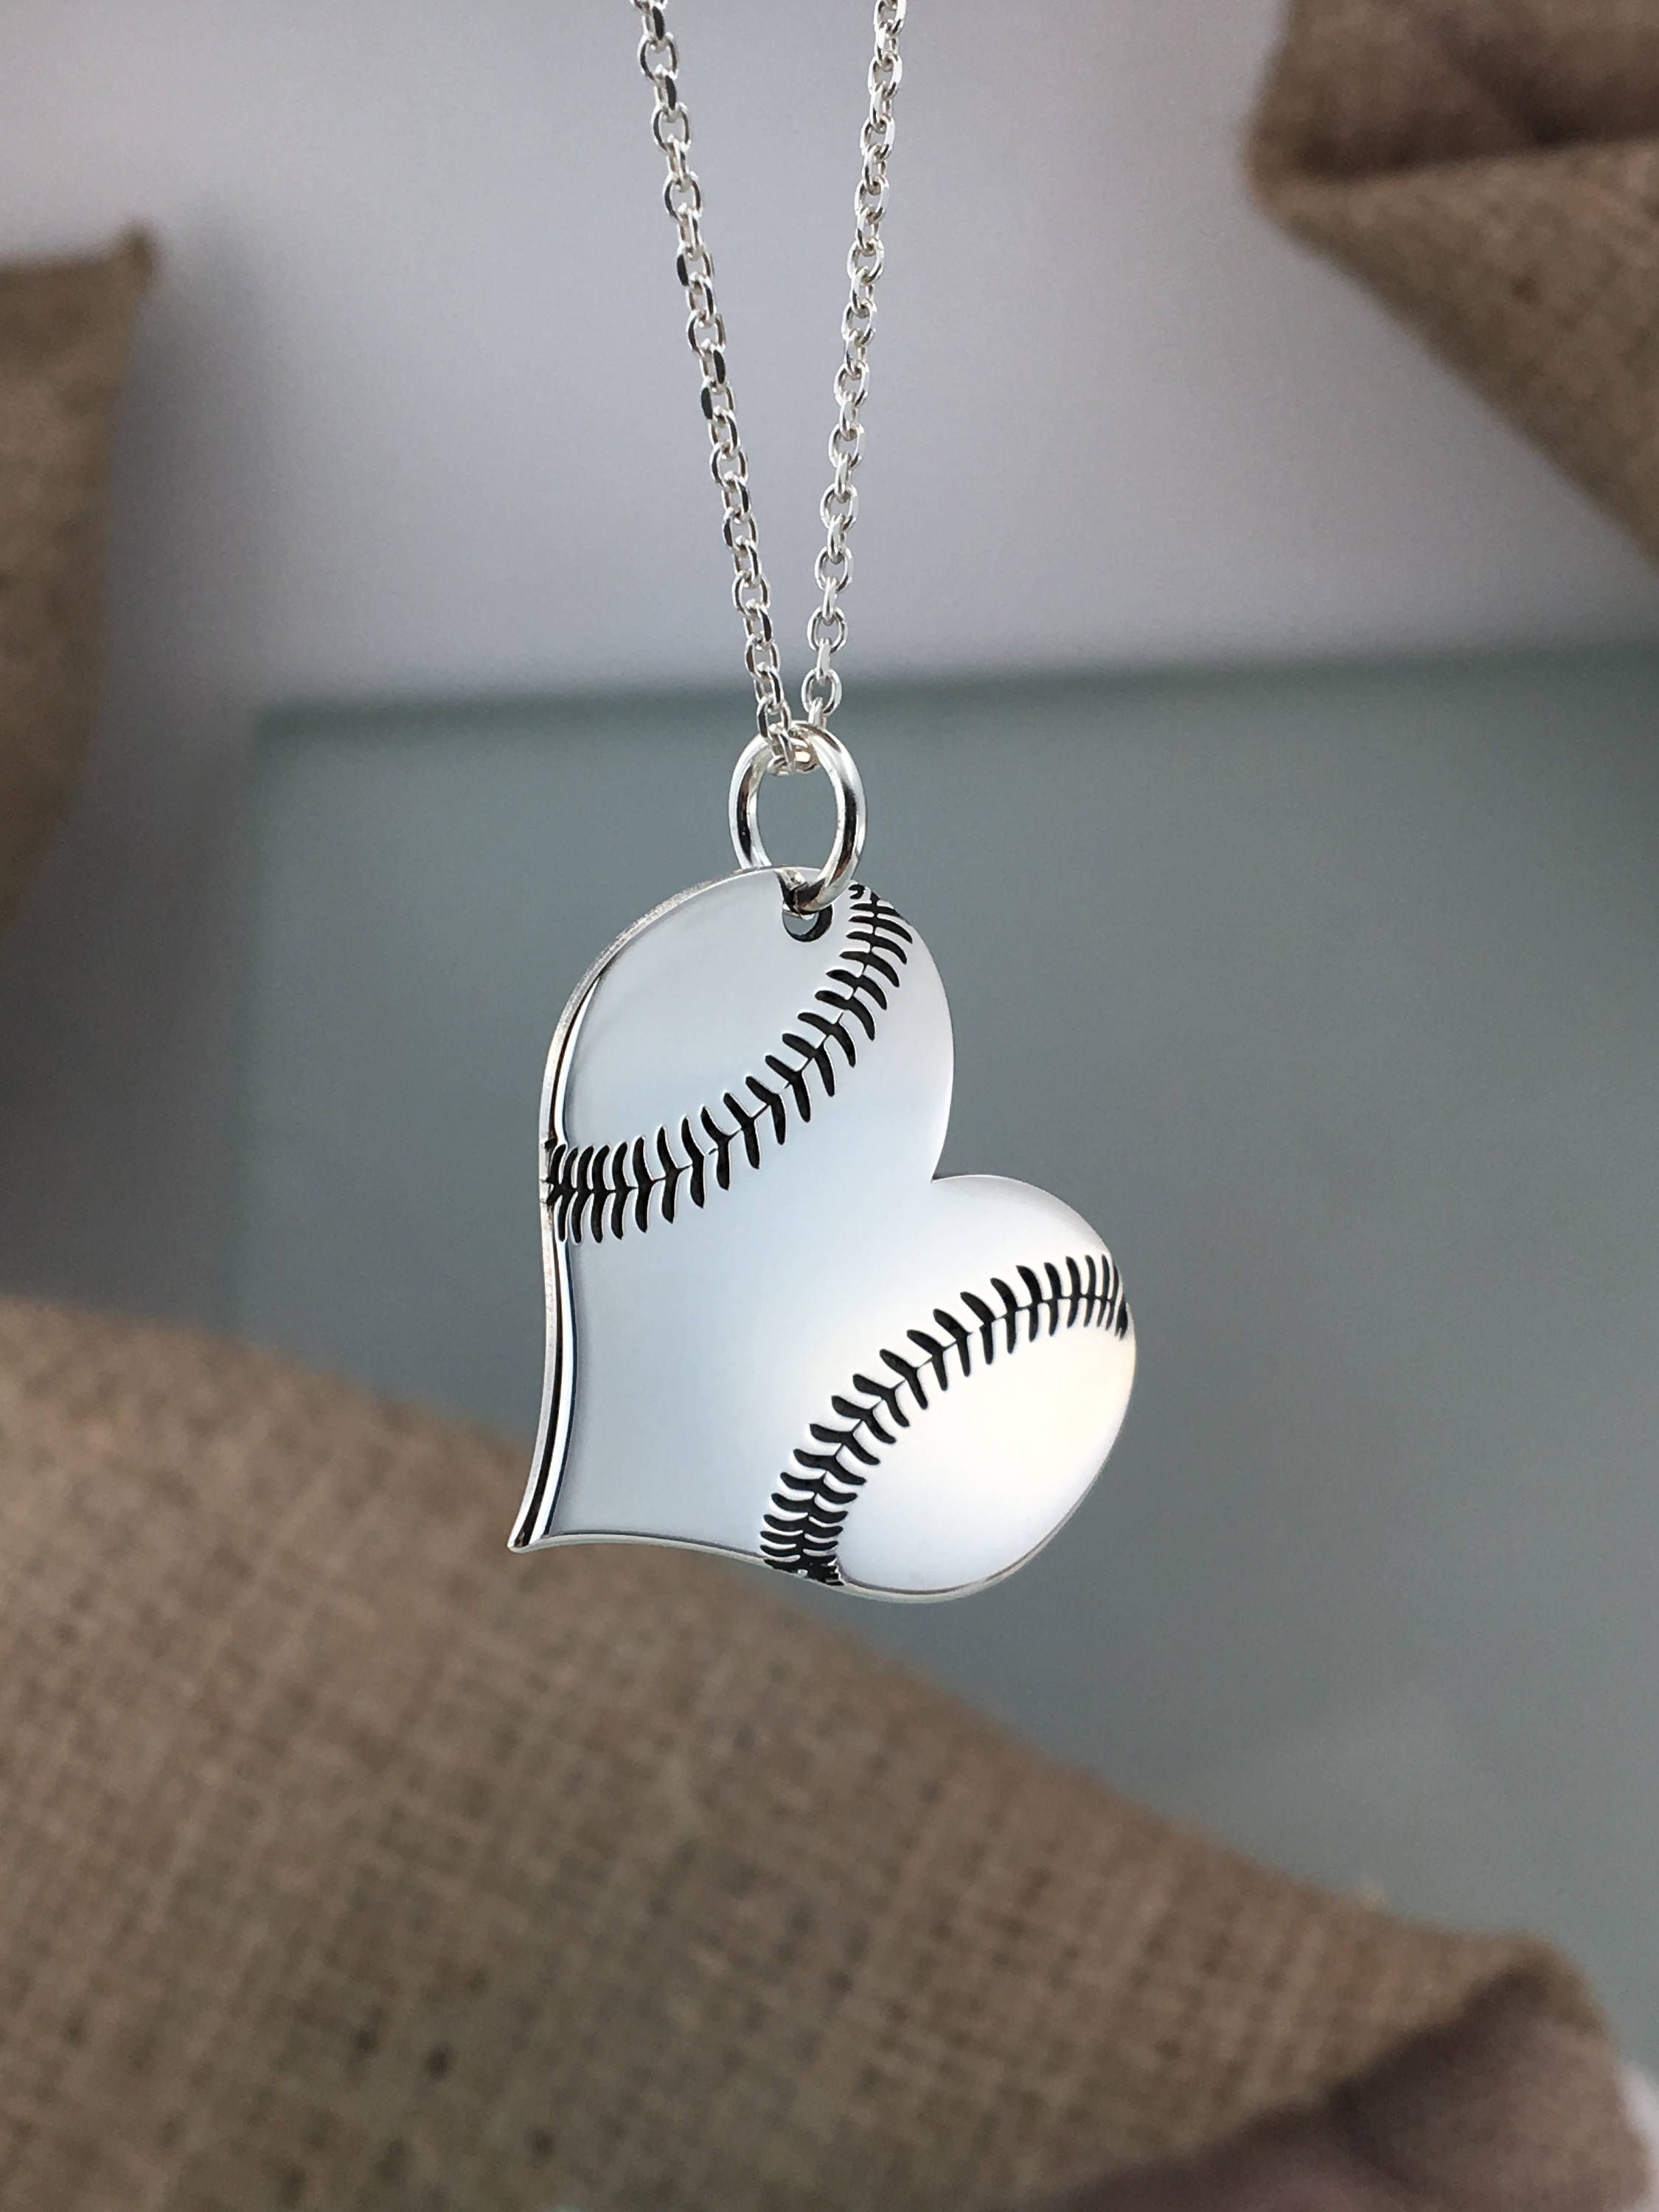 925 Sterling Silver BASEBALL Charm and Pendant